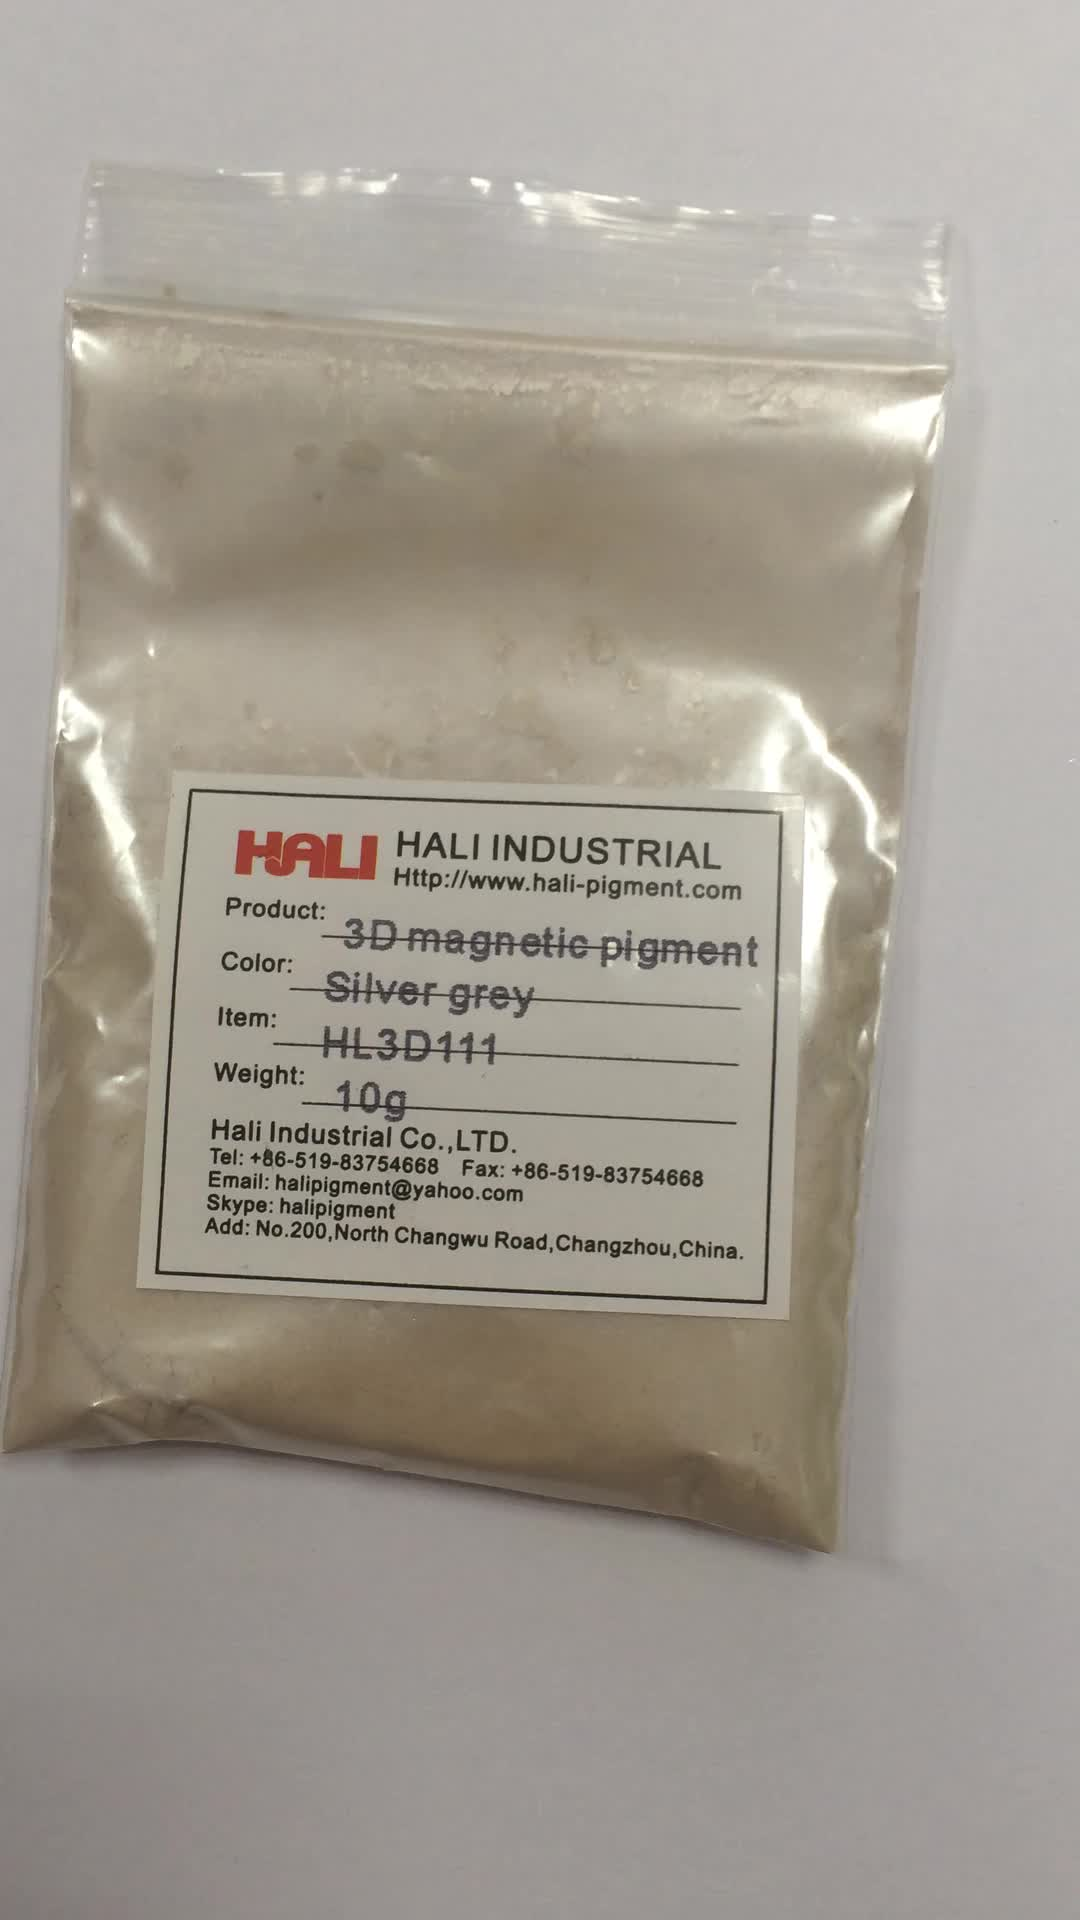 3D magnetic pigment,three-dimensional powder,stereoscopic,item:HL3D111,color:silver grey